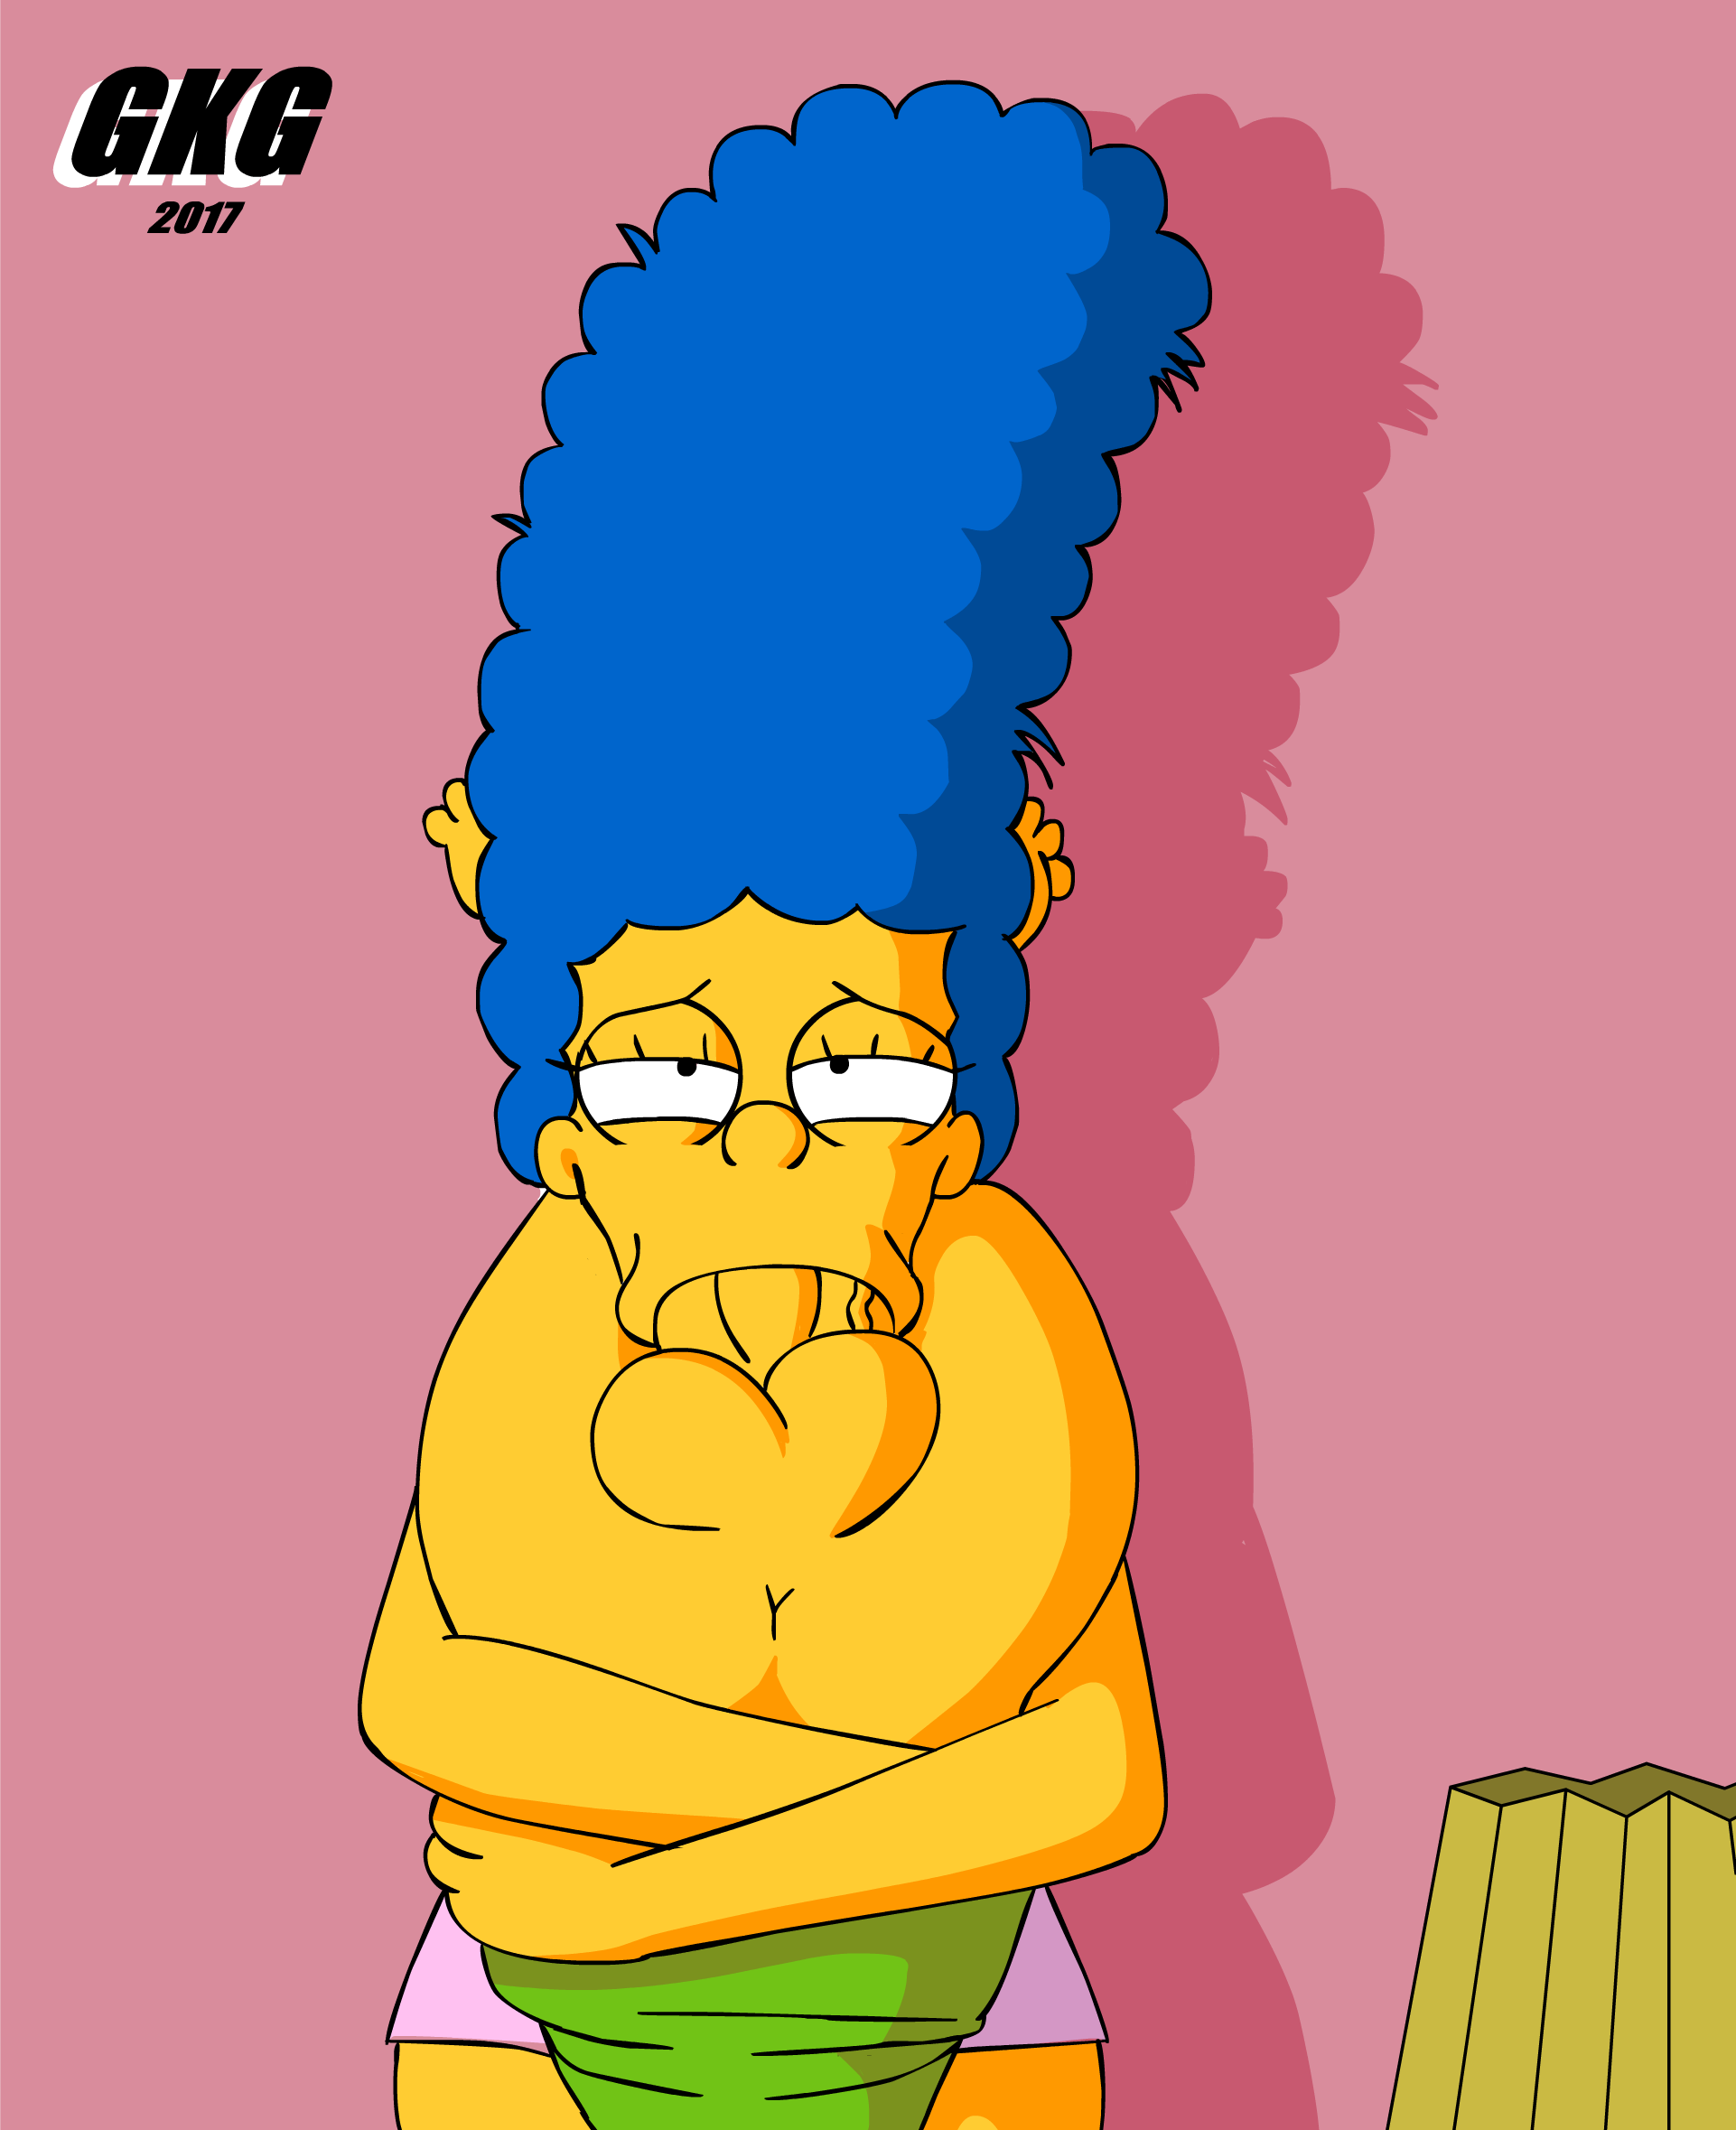 GKG – Marge & Bart (The Simpsons)